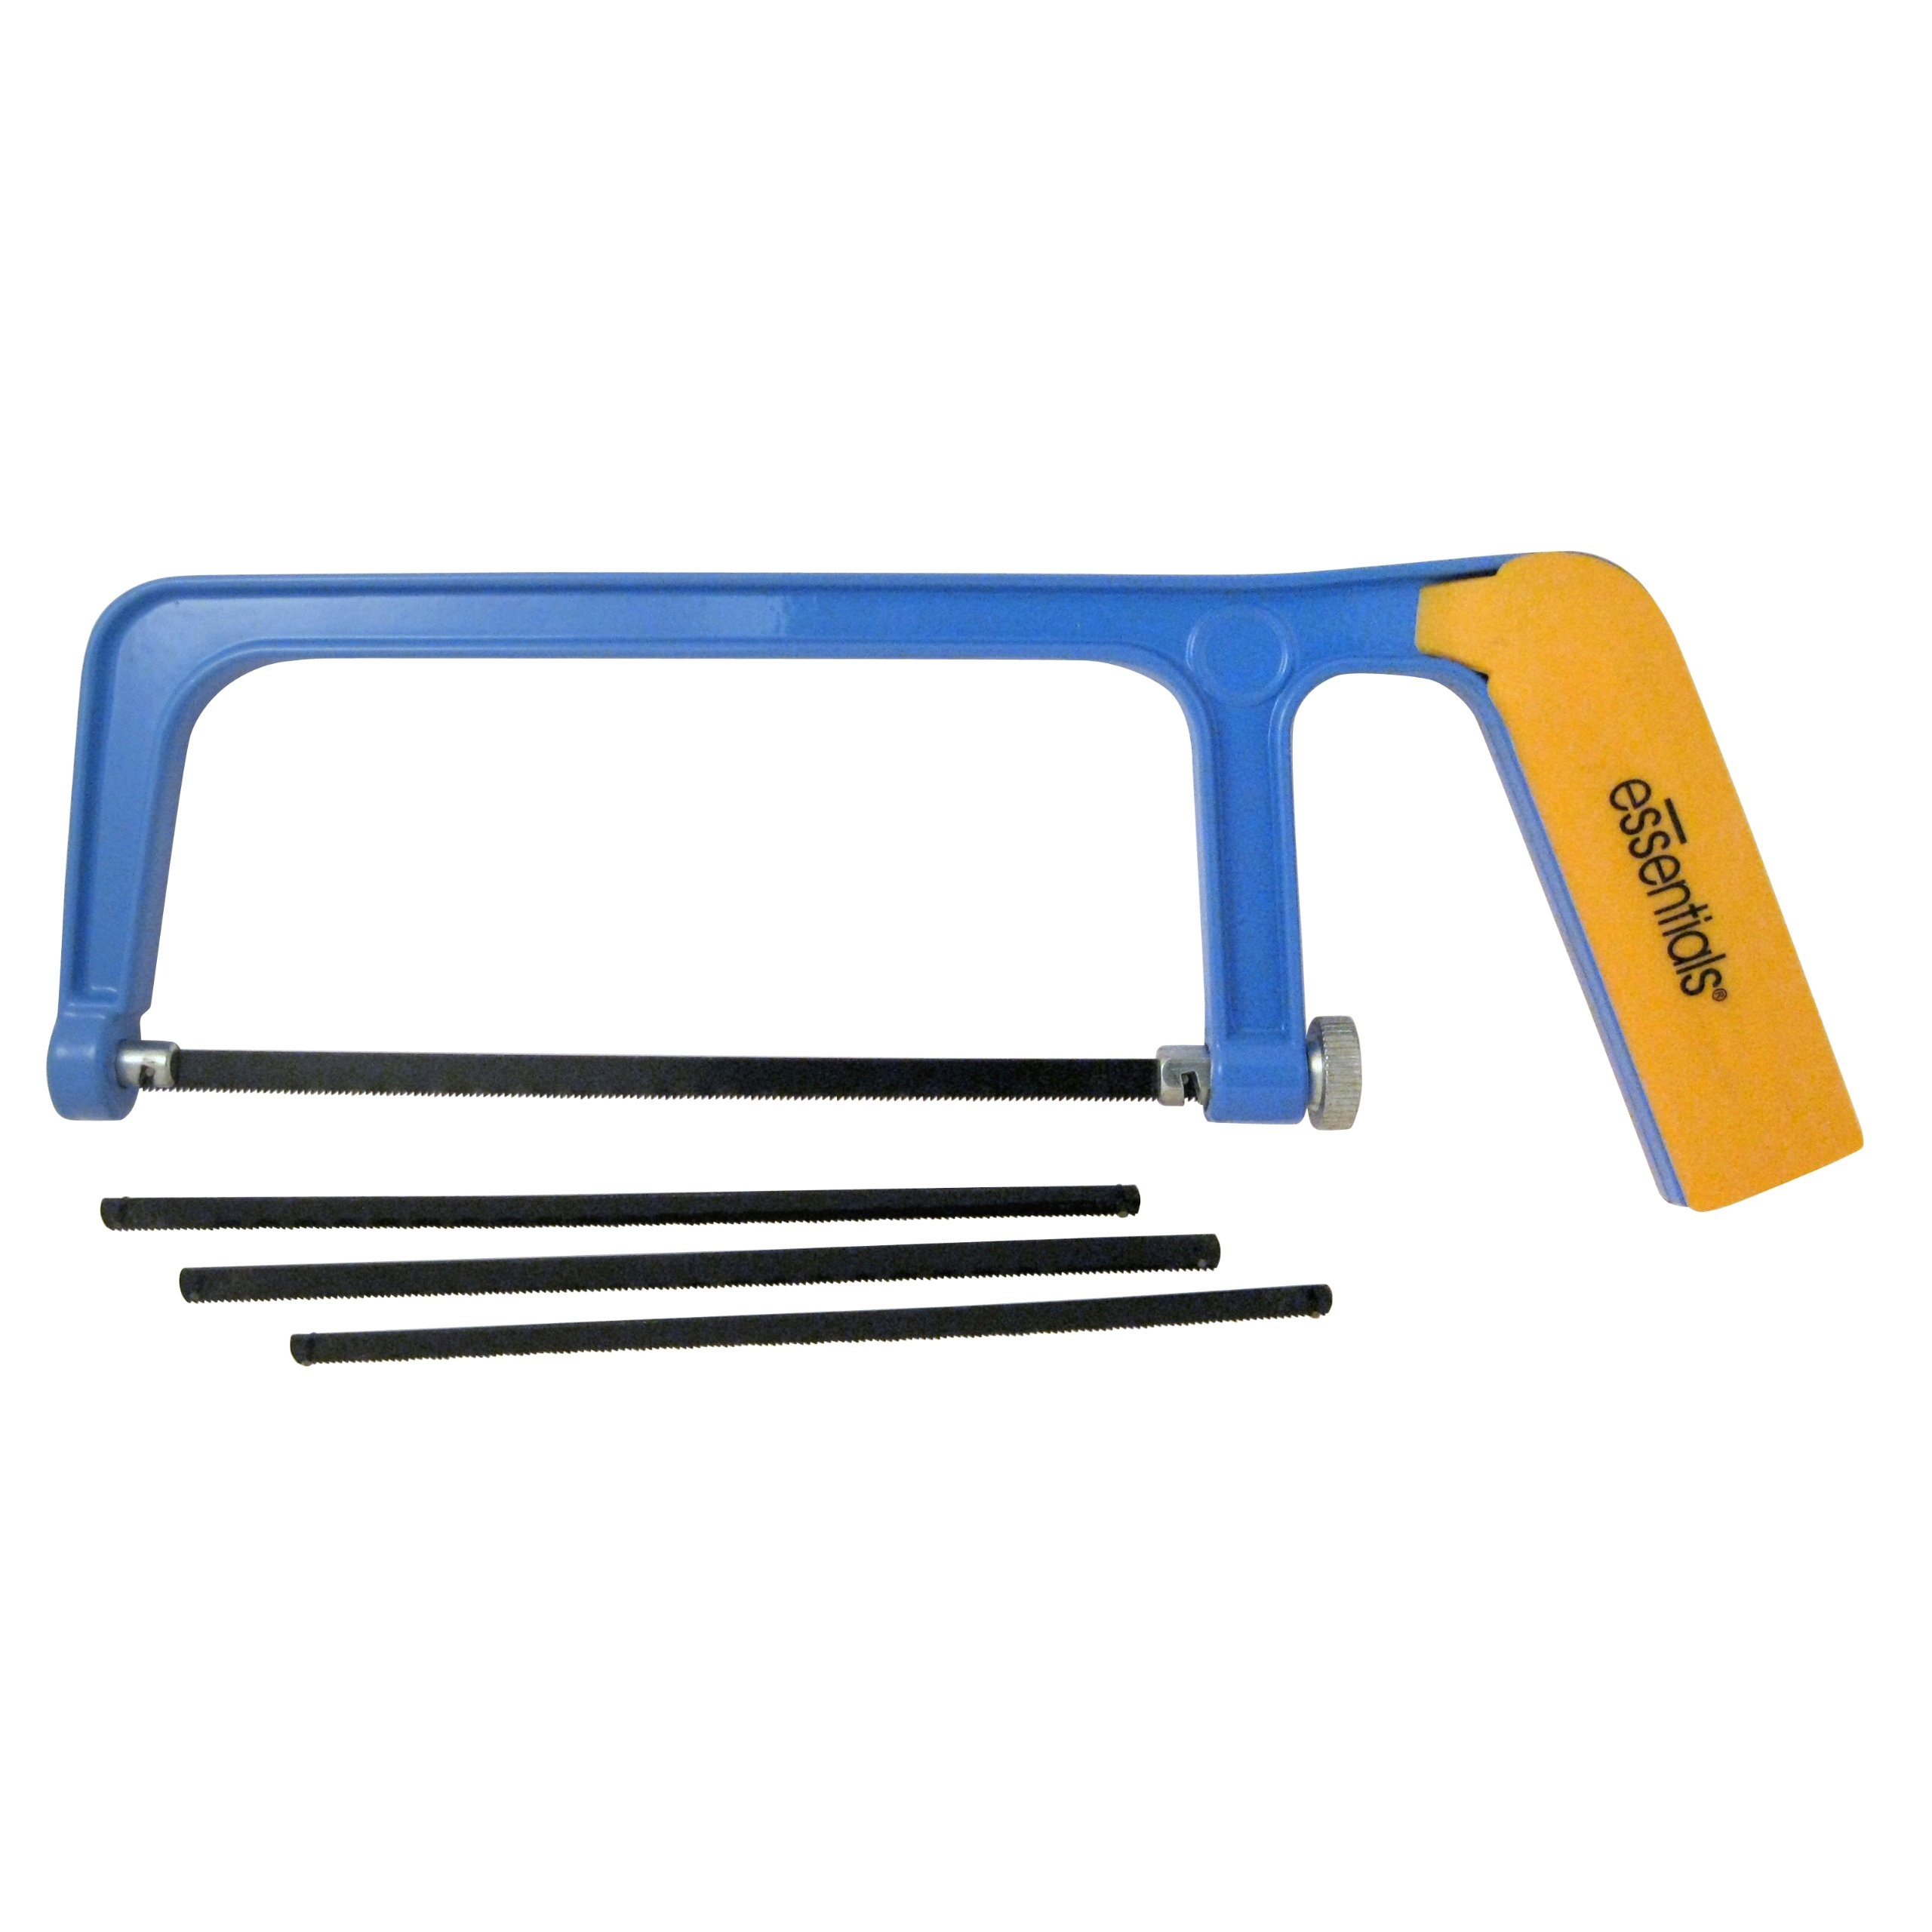 GreatNeck 21039 Essentials Hacksaw with 3 Extra Blades